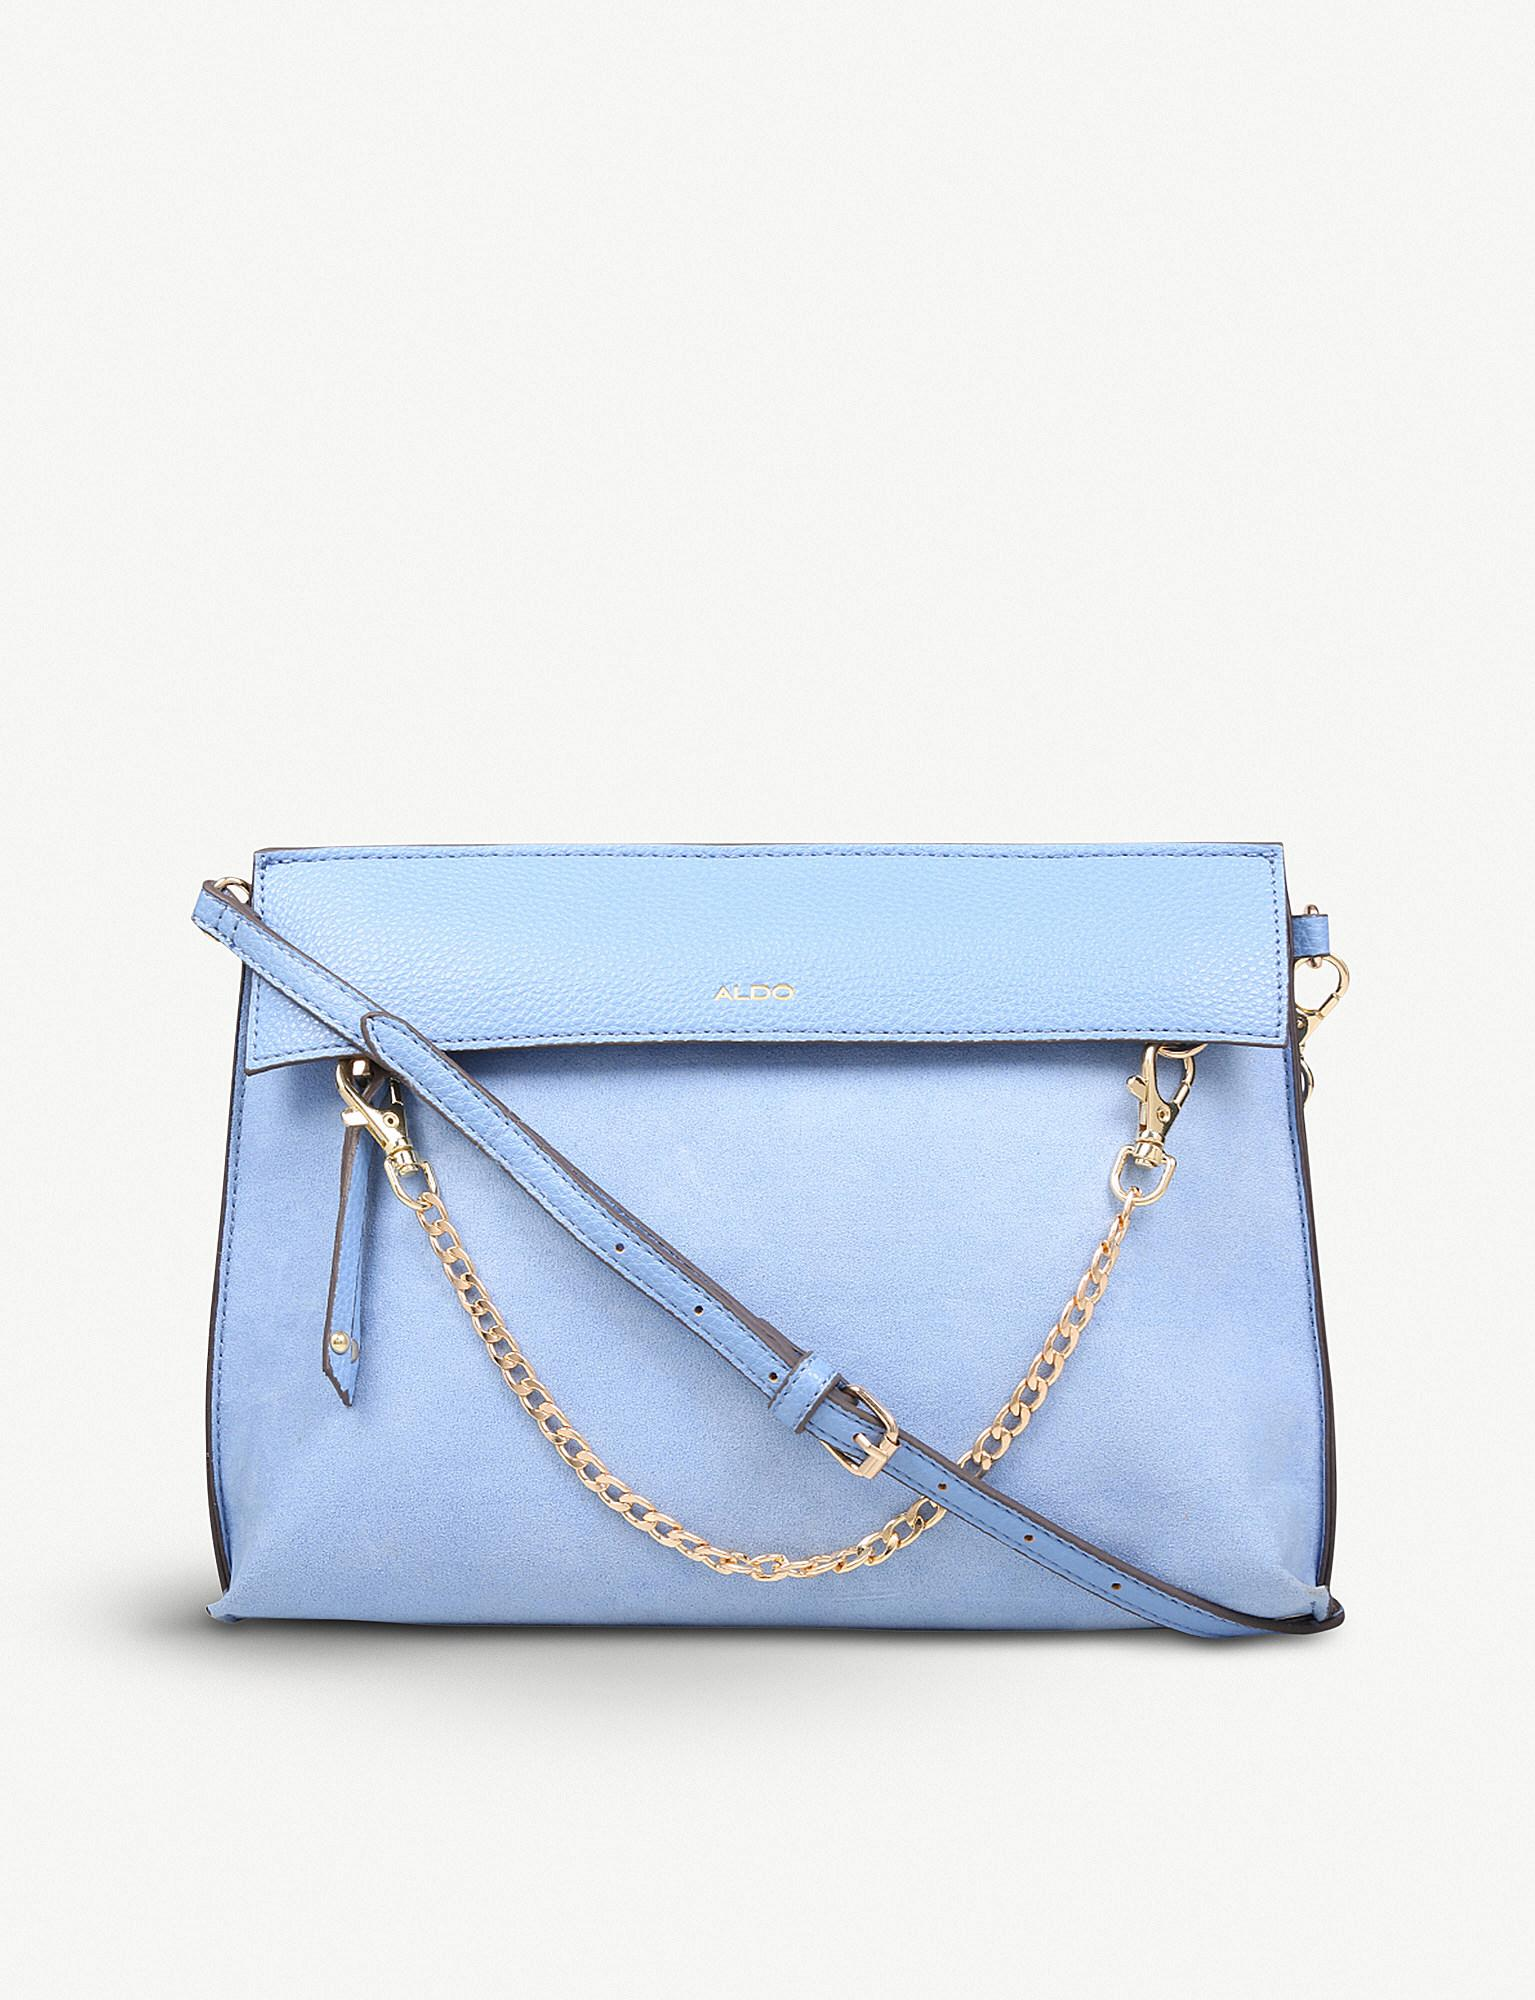 24efebaf8a0 Lyst - ALDO Asiasien Faux-leather And Suedette Clutch in Blue